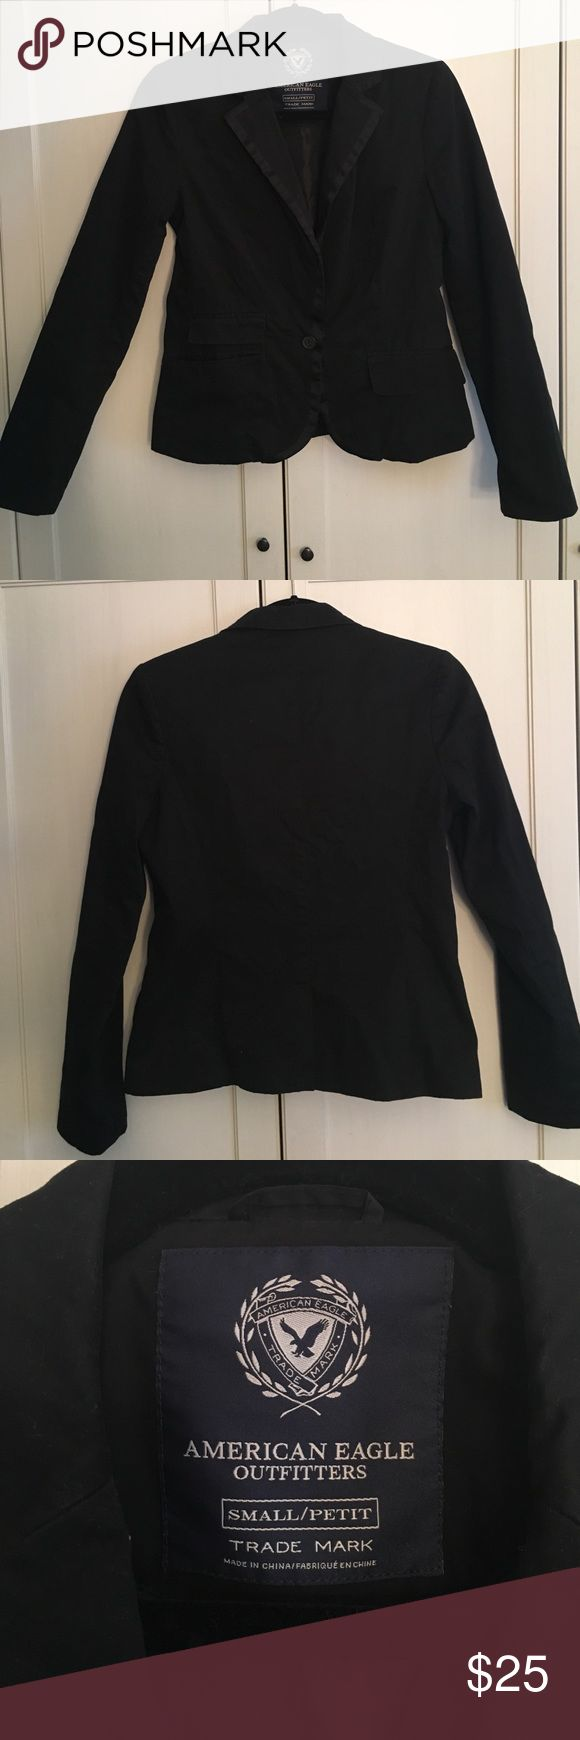 AE Outfitters Black Petite Women's Blazer One button blazer. Lightly worn, in good condition American Eagle Outfitters Jackets & Coats Blazers